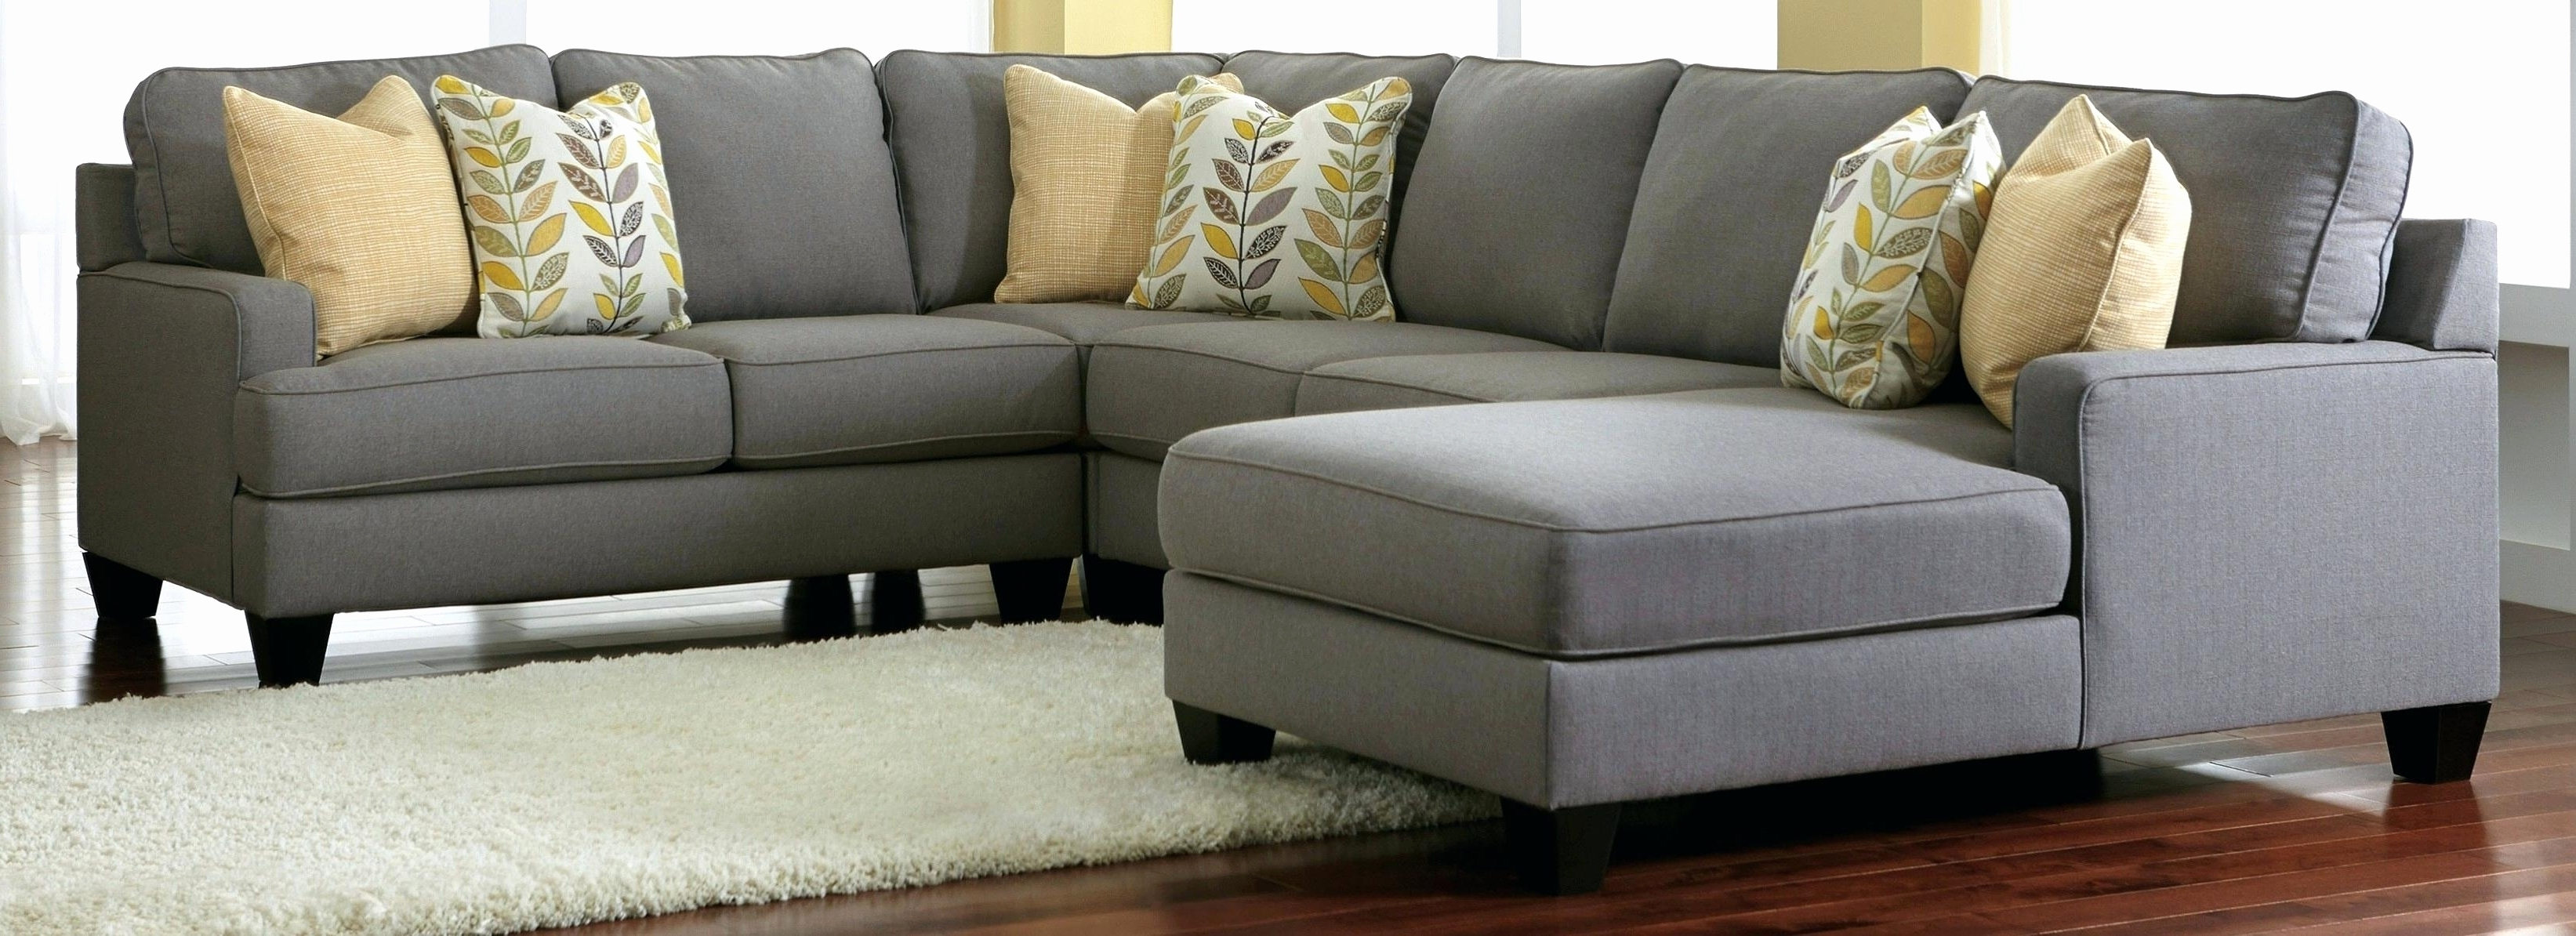 Best And Newest Grey Sectional Sofas With Chaise Pertaining To New Charcoal Grey Sectional Sofa With Chaise 2018 – Couches And (View 1 of 15)